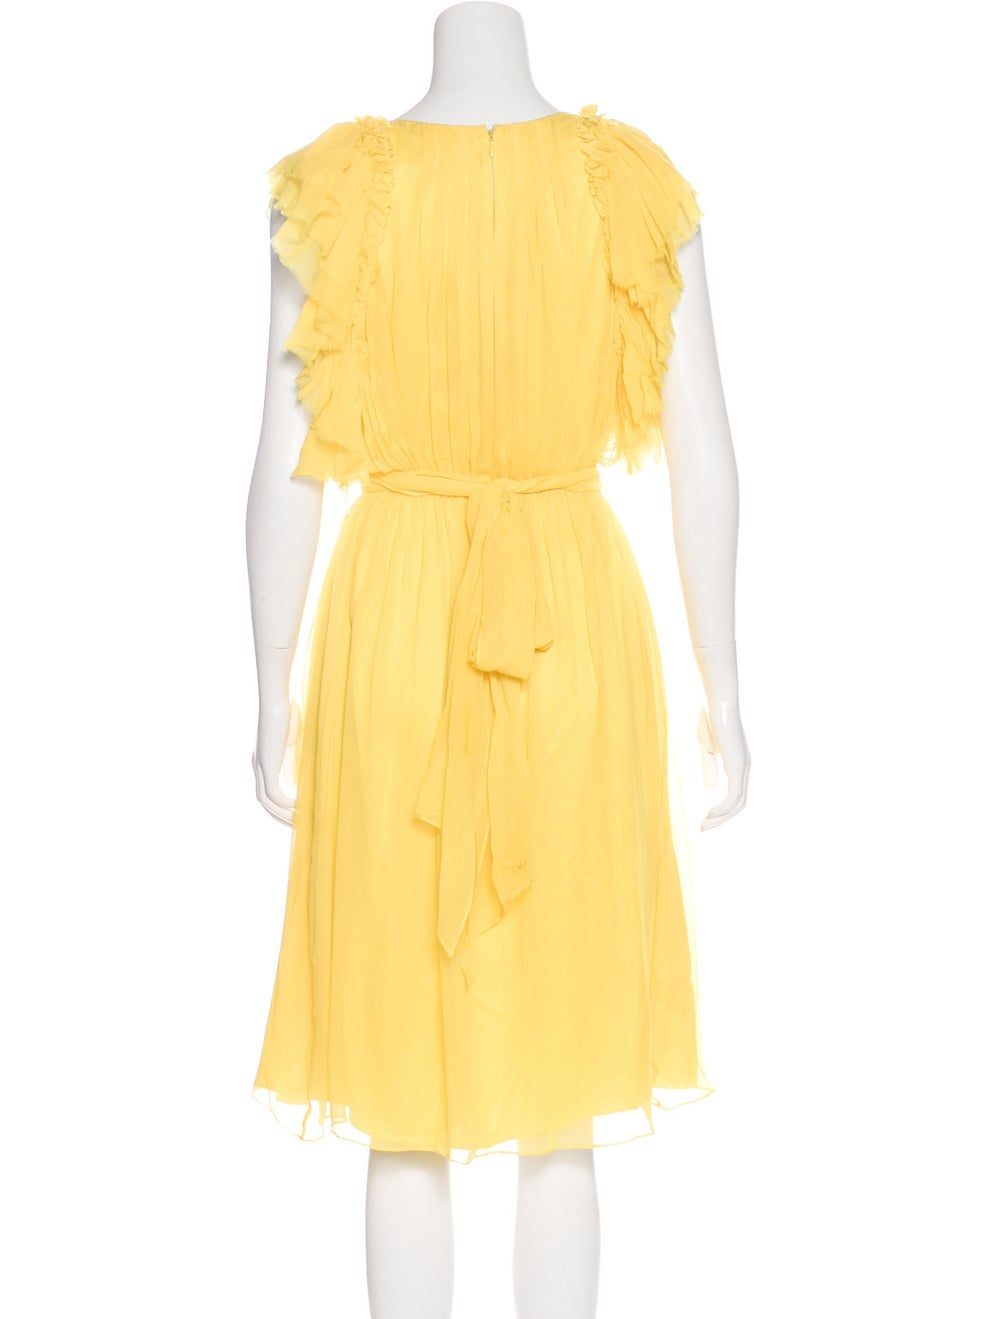 Thomas Wylde Ruffle Midi Dress Yellow - image 3